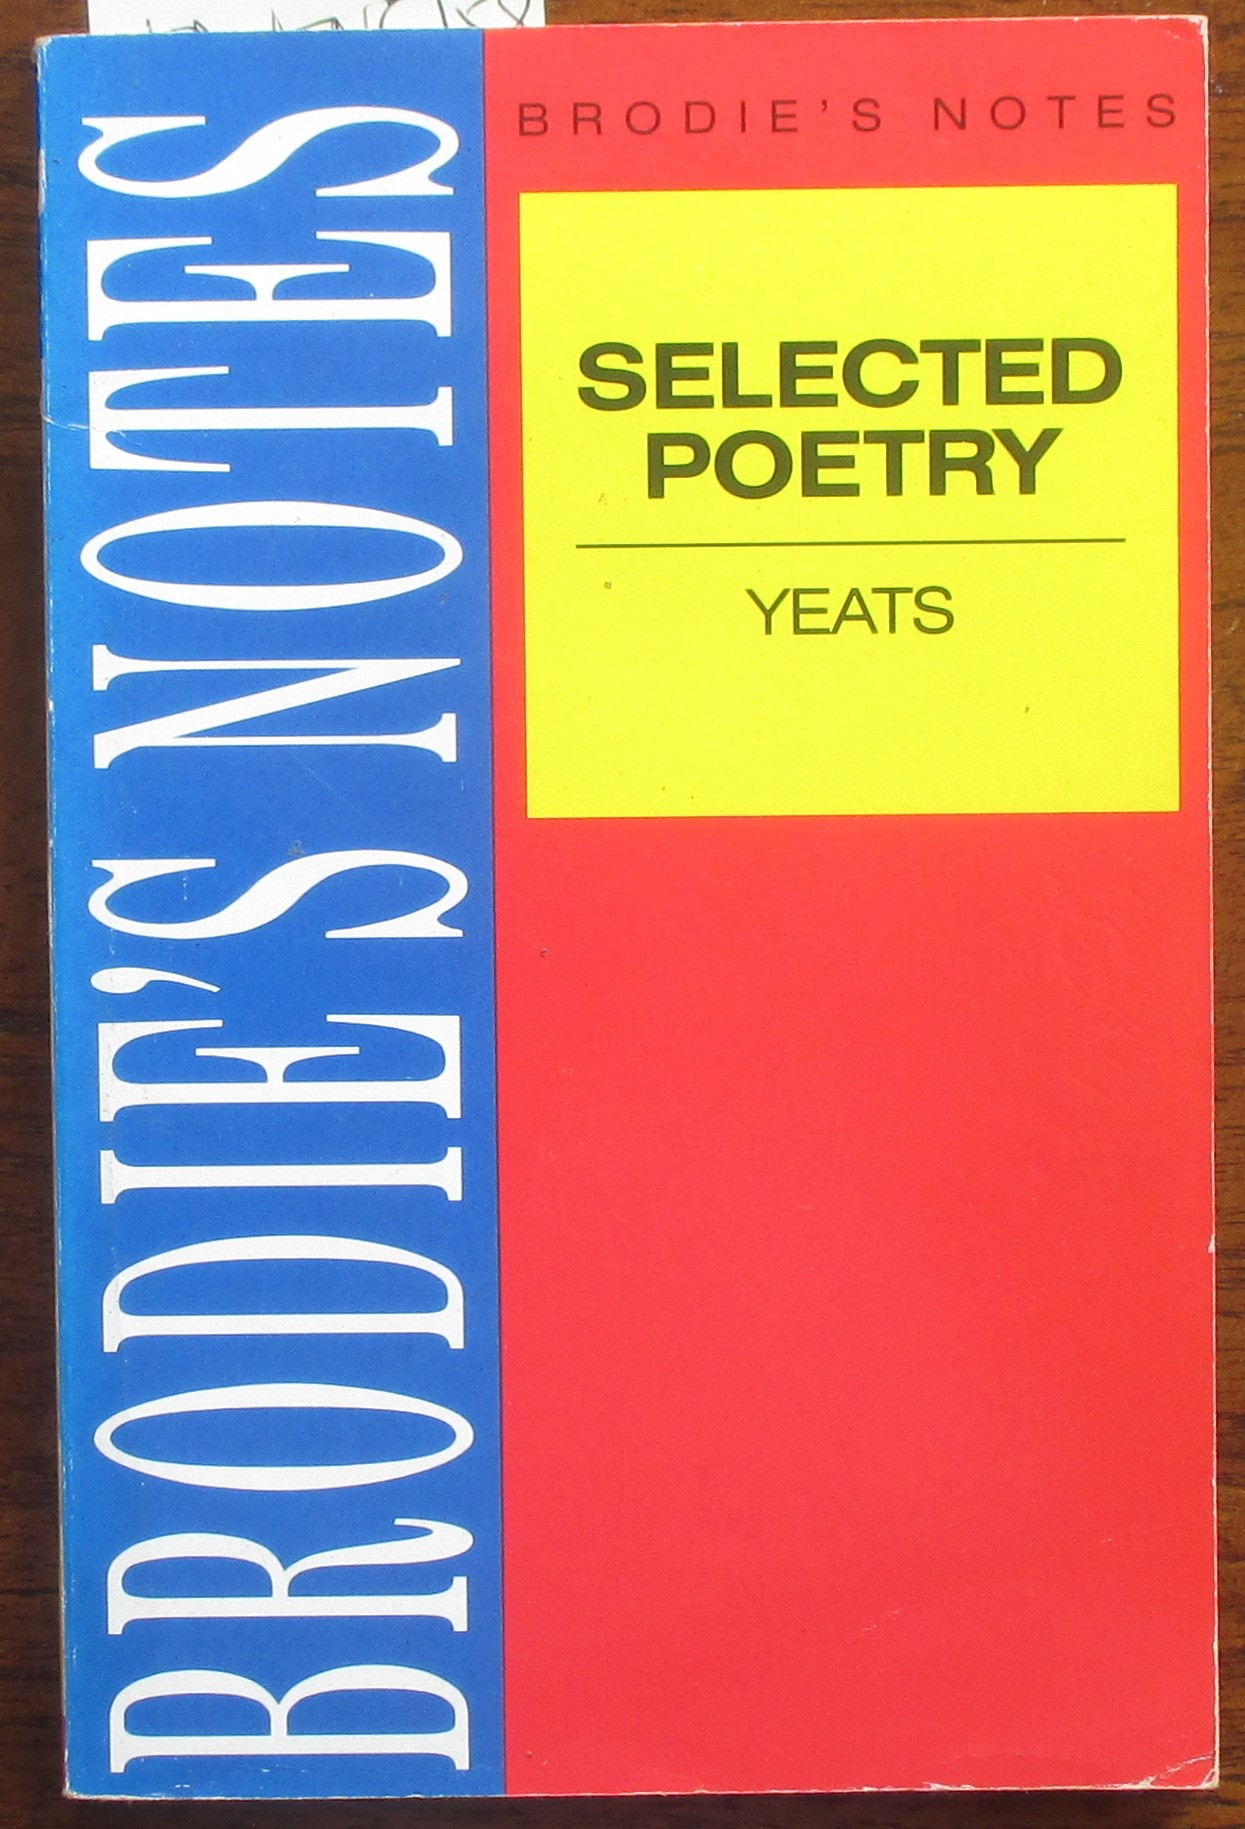 Image for W. B. Yeats: Selected Poetry (Brodie's Notes)